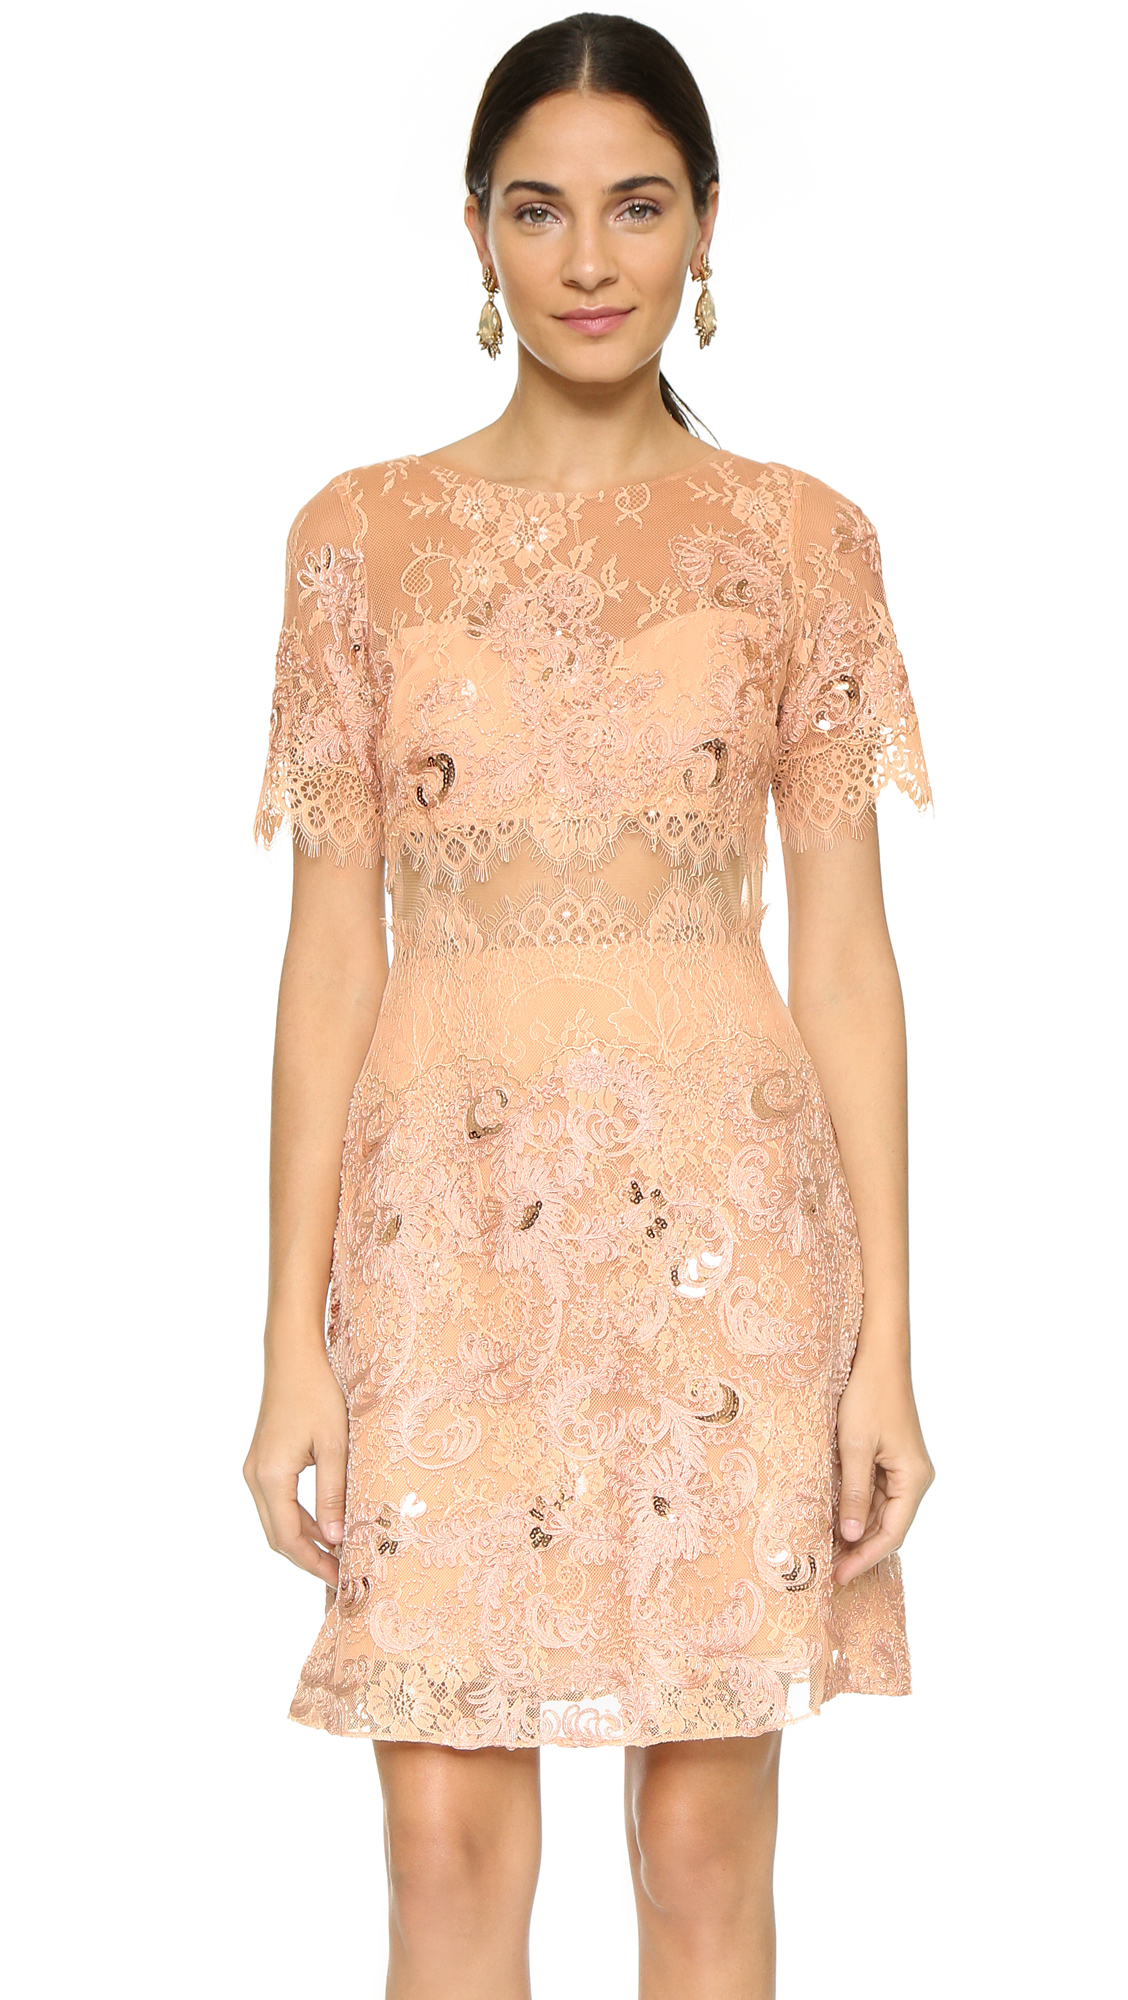 Notte by marchesa Short Sleeve Dress in Pink  Lyst